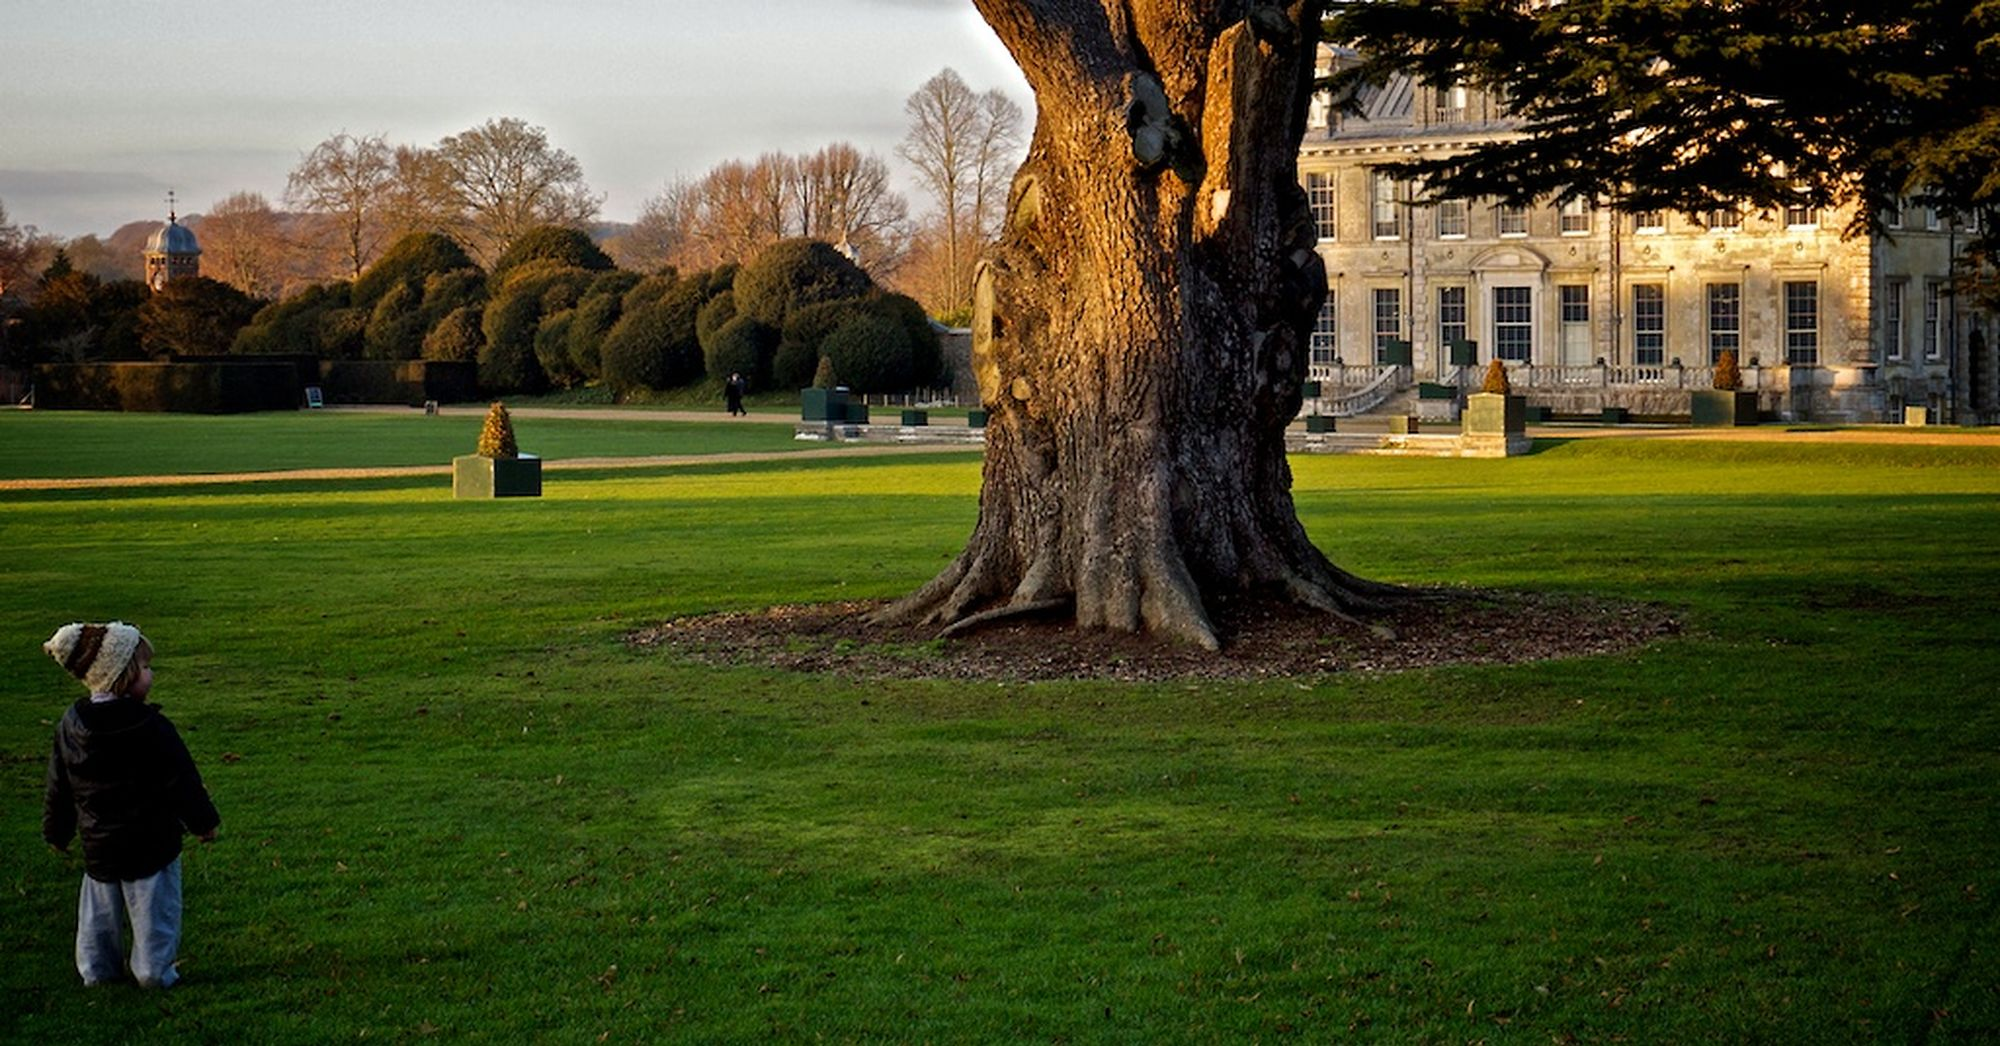 digby & cedars at kingston lacy